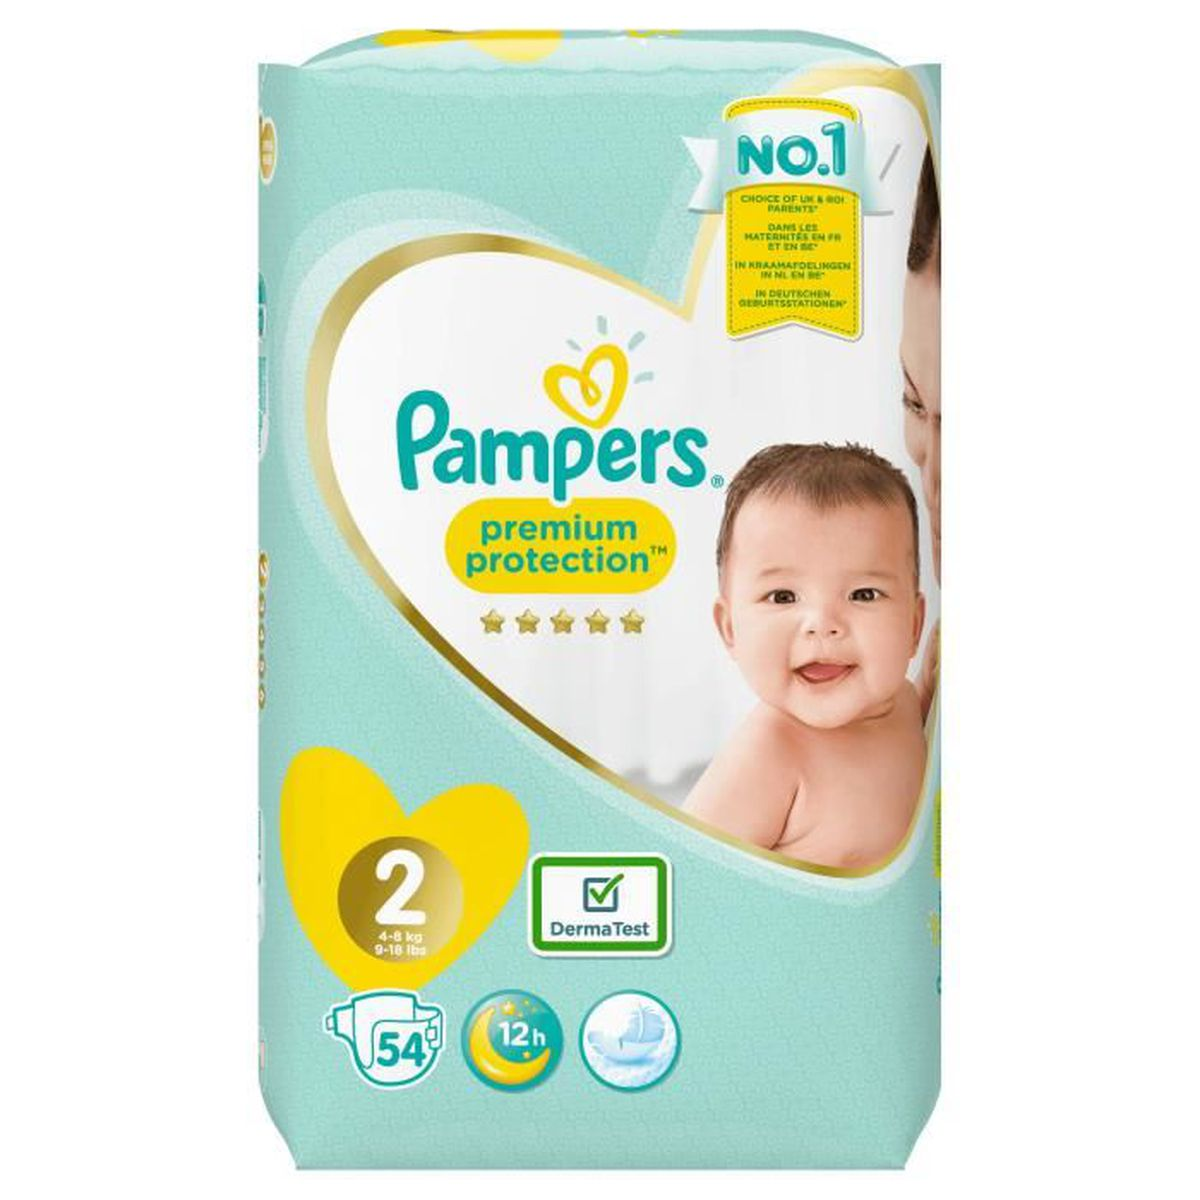 Pampers New Baby Taille 2 3 à 6 Kg 54 Couches Achat Vente